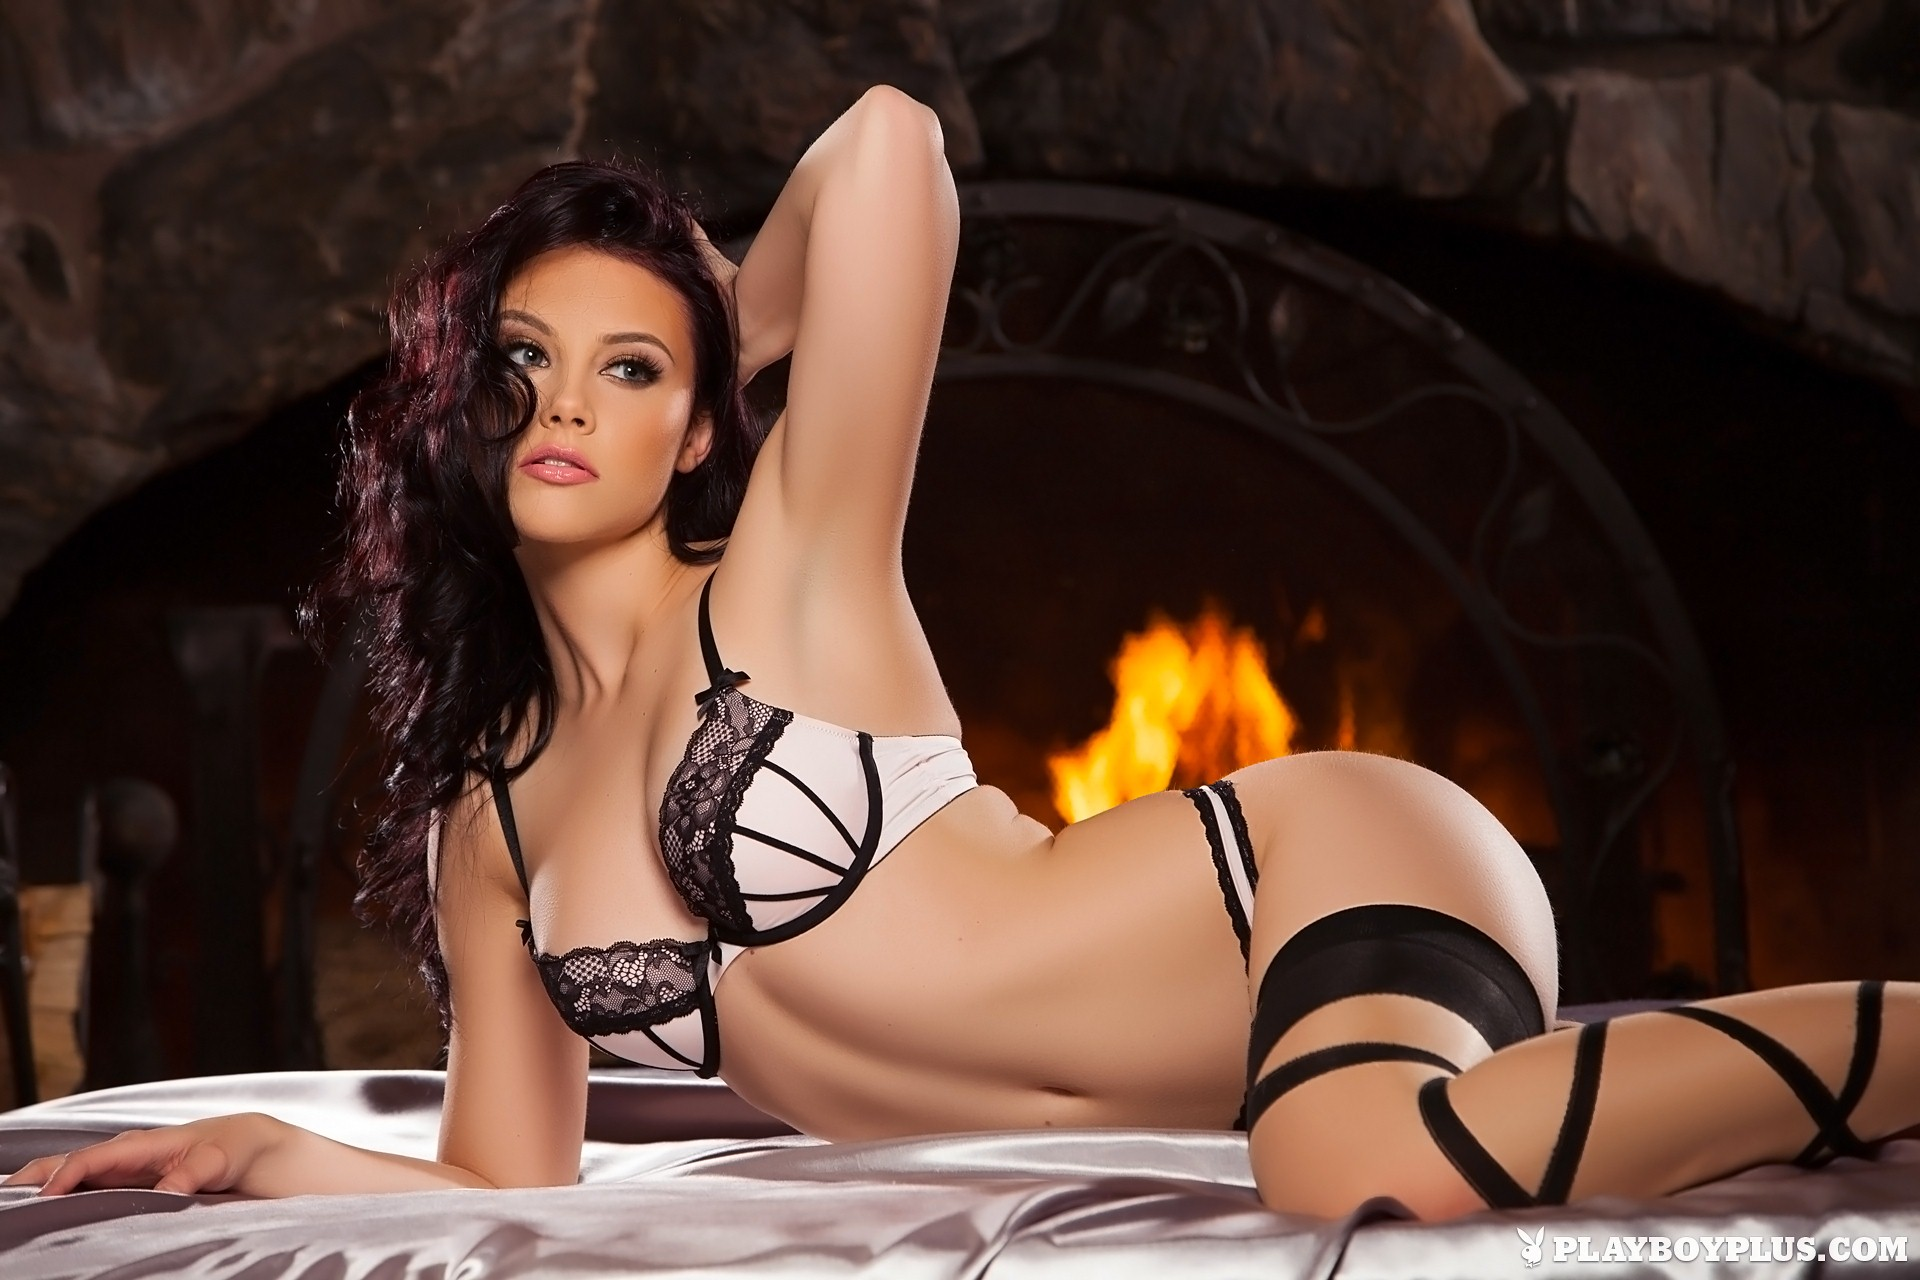 Iana Little nude in Silk Inferno for Playboy | Daily Girls @ Female Update